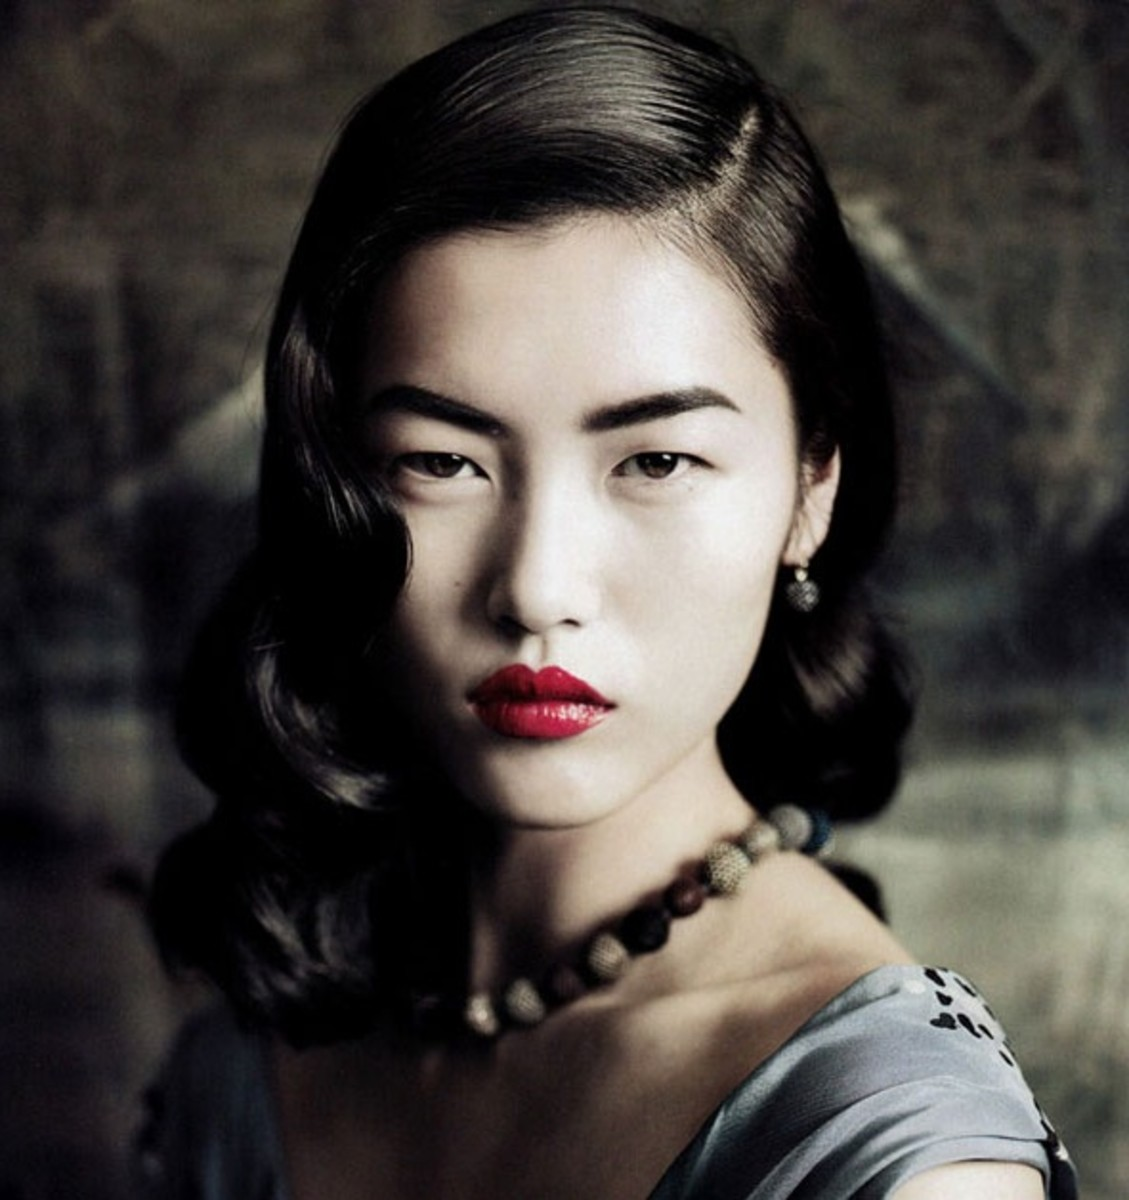 Deep red lipstick on Chinese model.